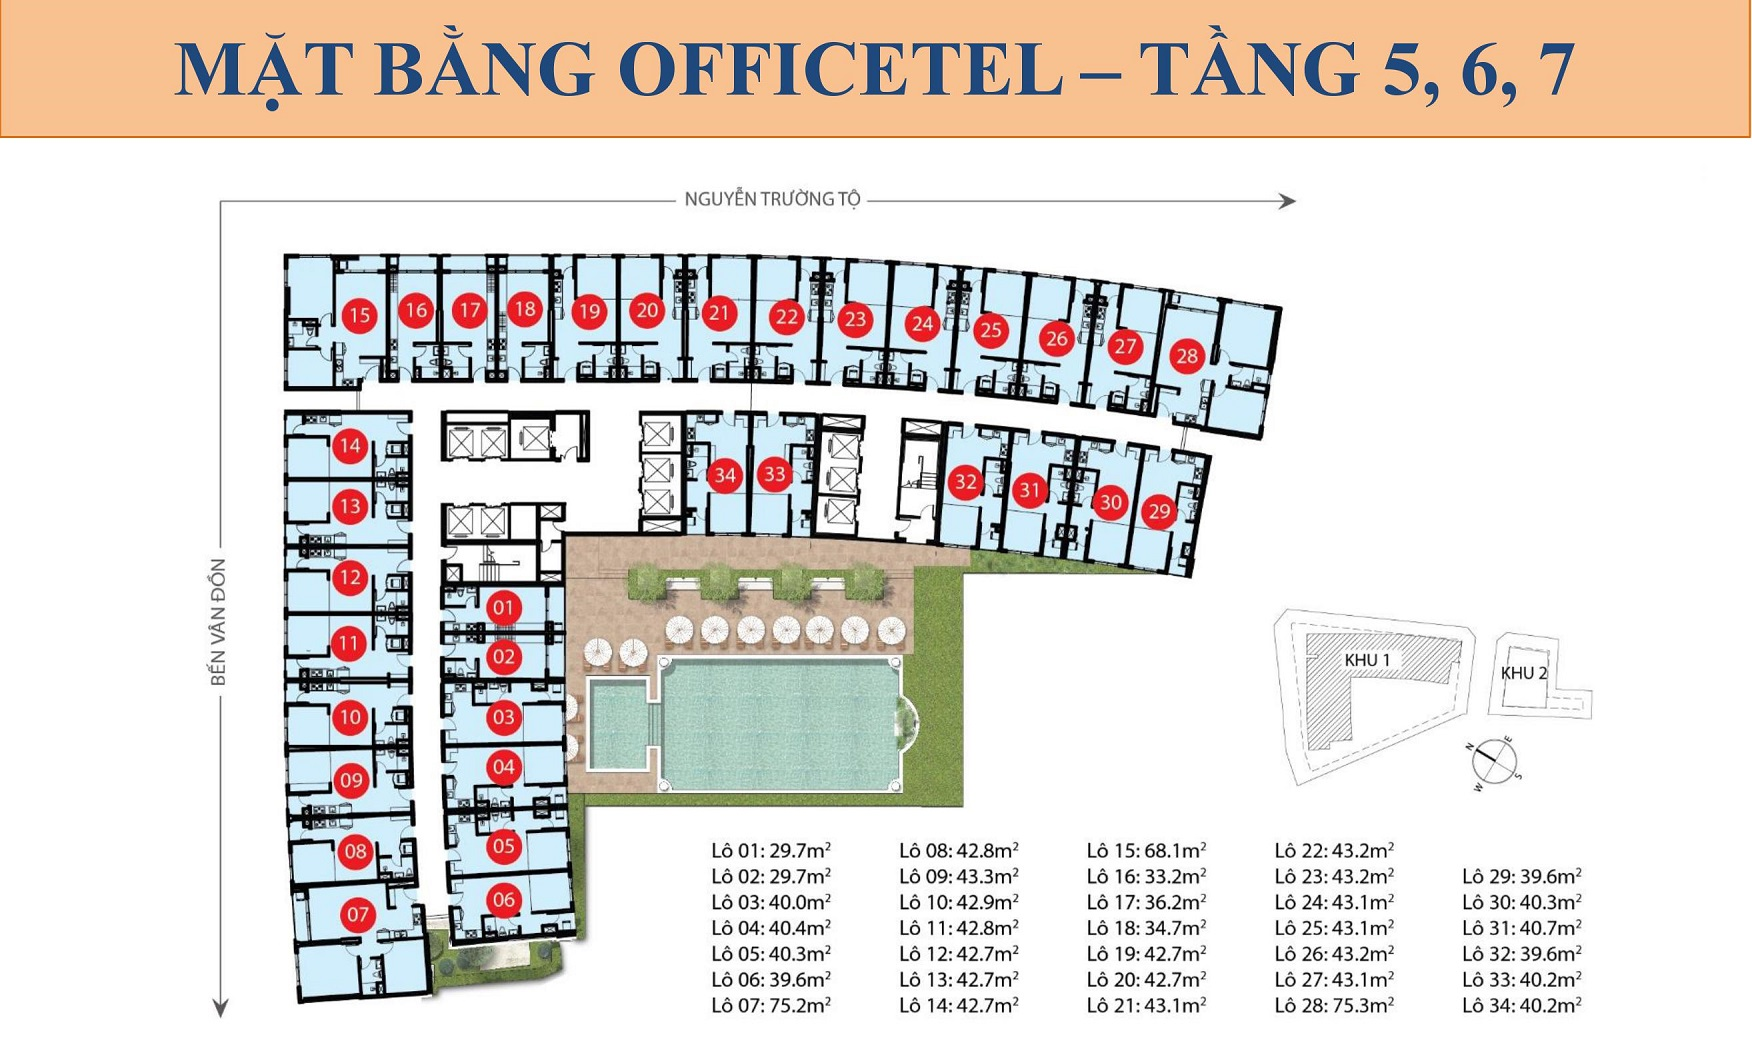 mat-bang-officetel-tang567-saigon-royal